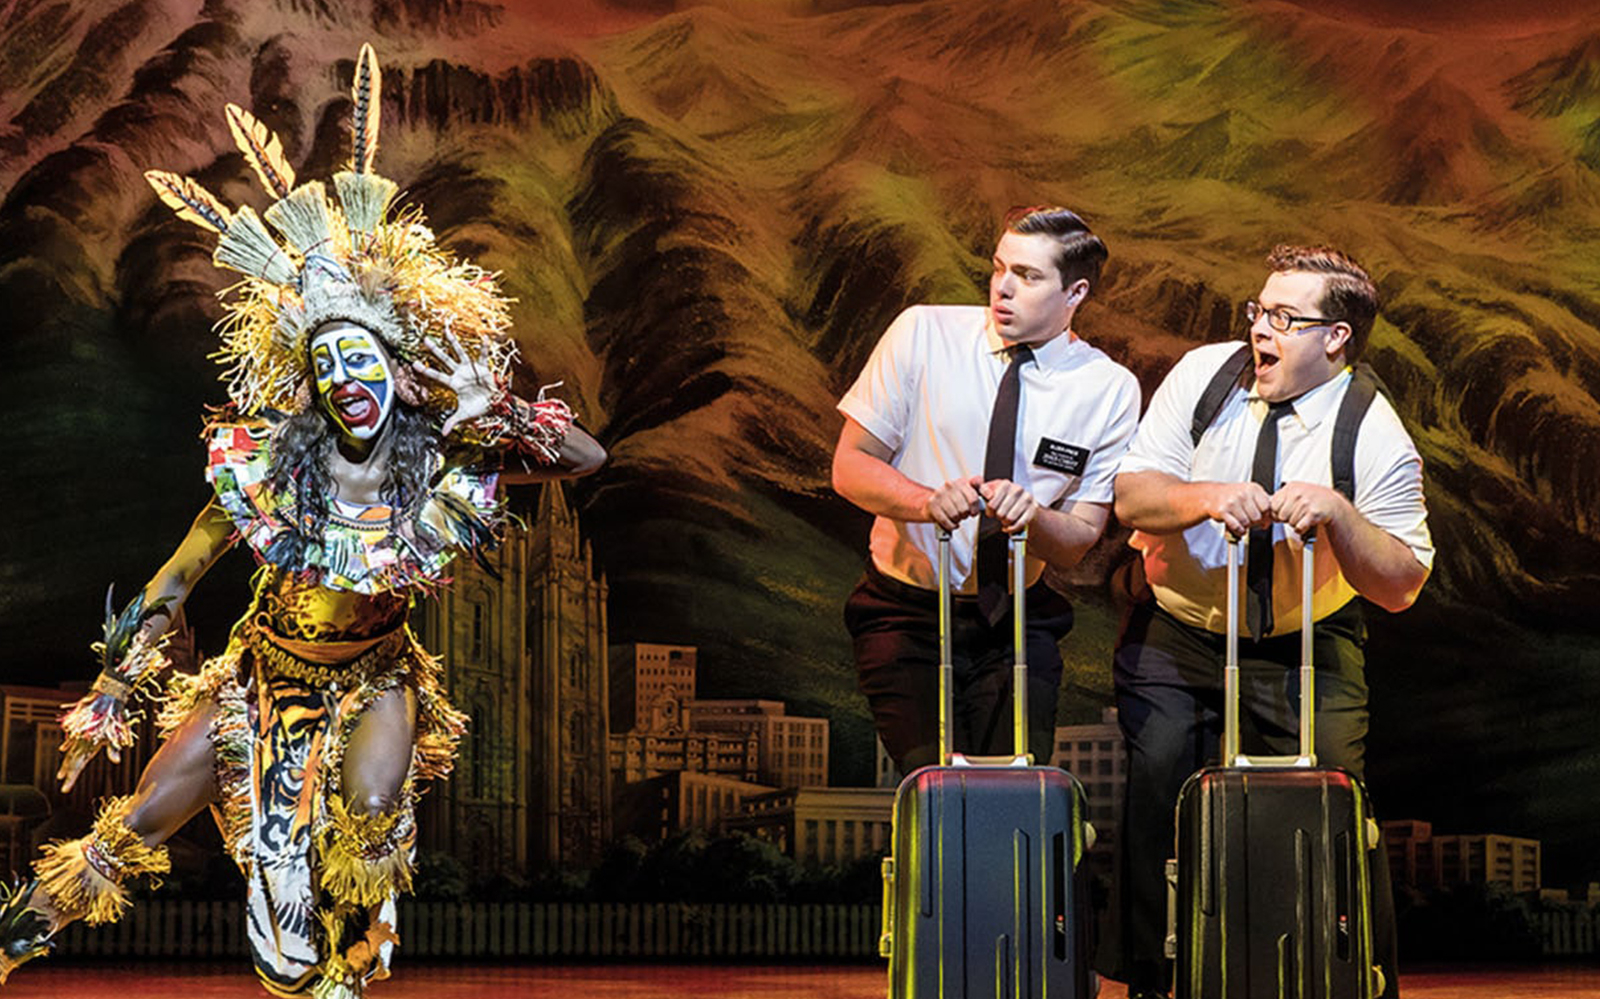 5c20610d ed3e 4de9 b8fd 246a3bfcb4b1 2843 london book of mormon 03